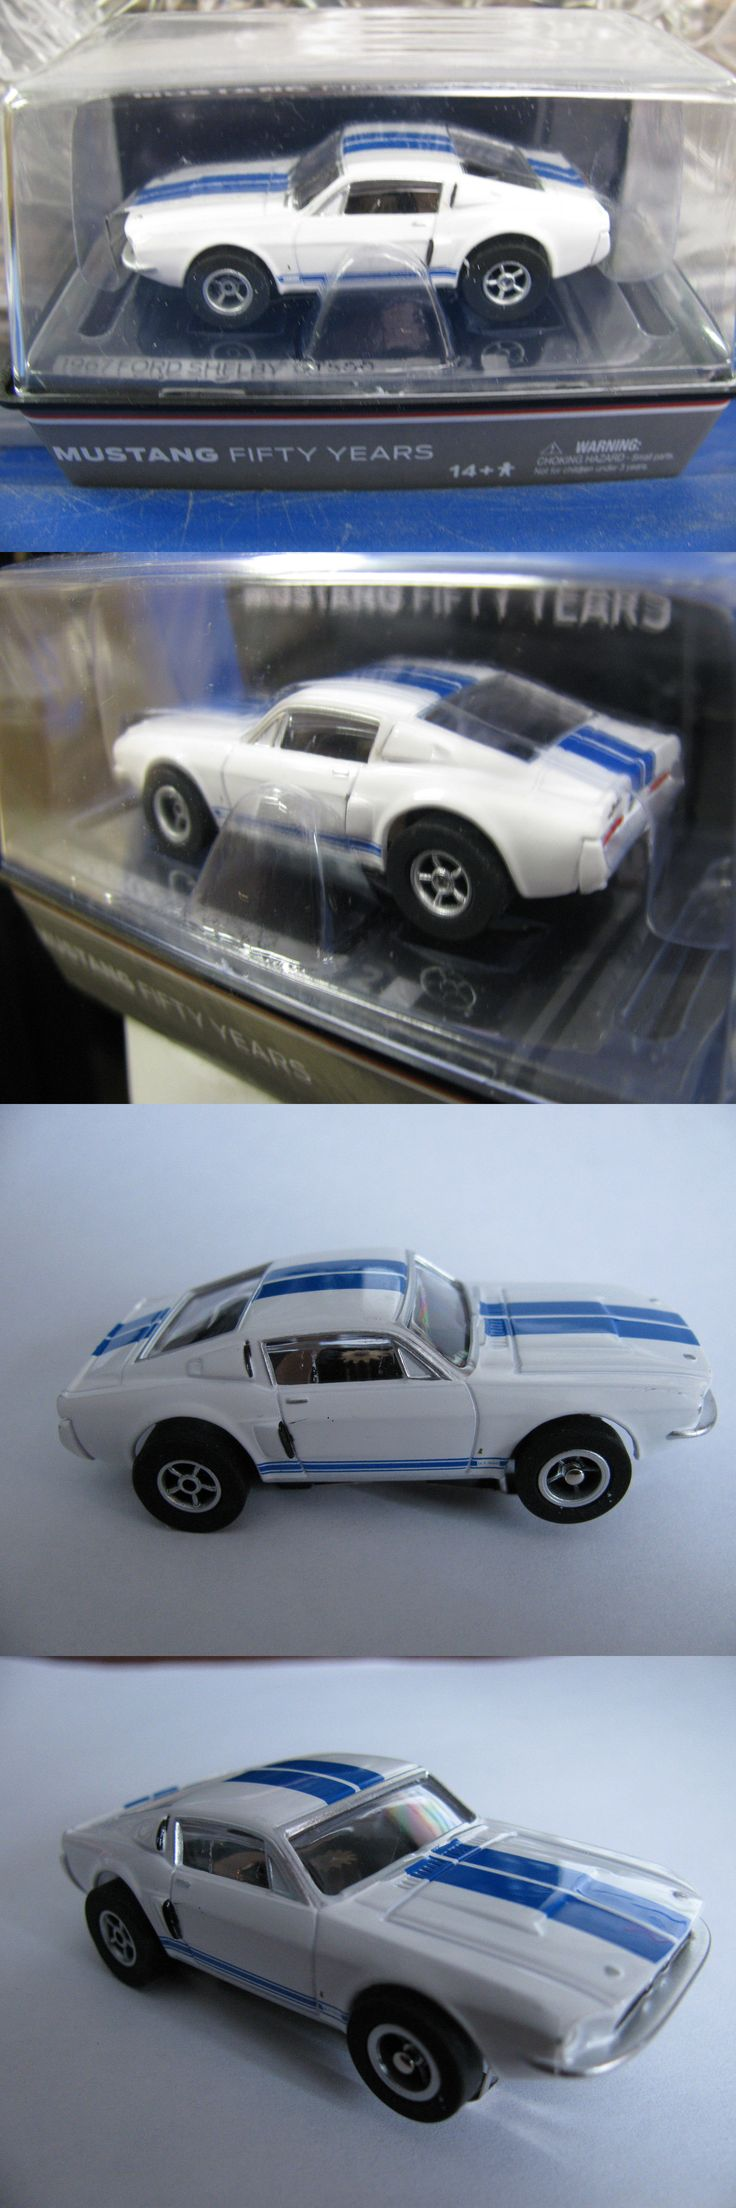 1970 now 2619 aw afx 50 year white blue stripe ford shelby gt new